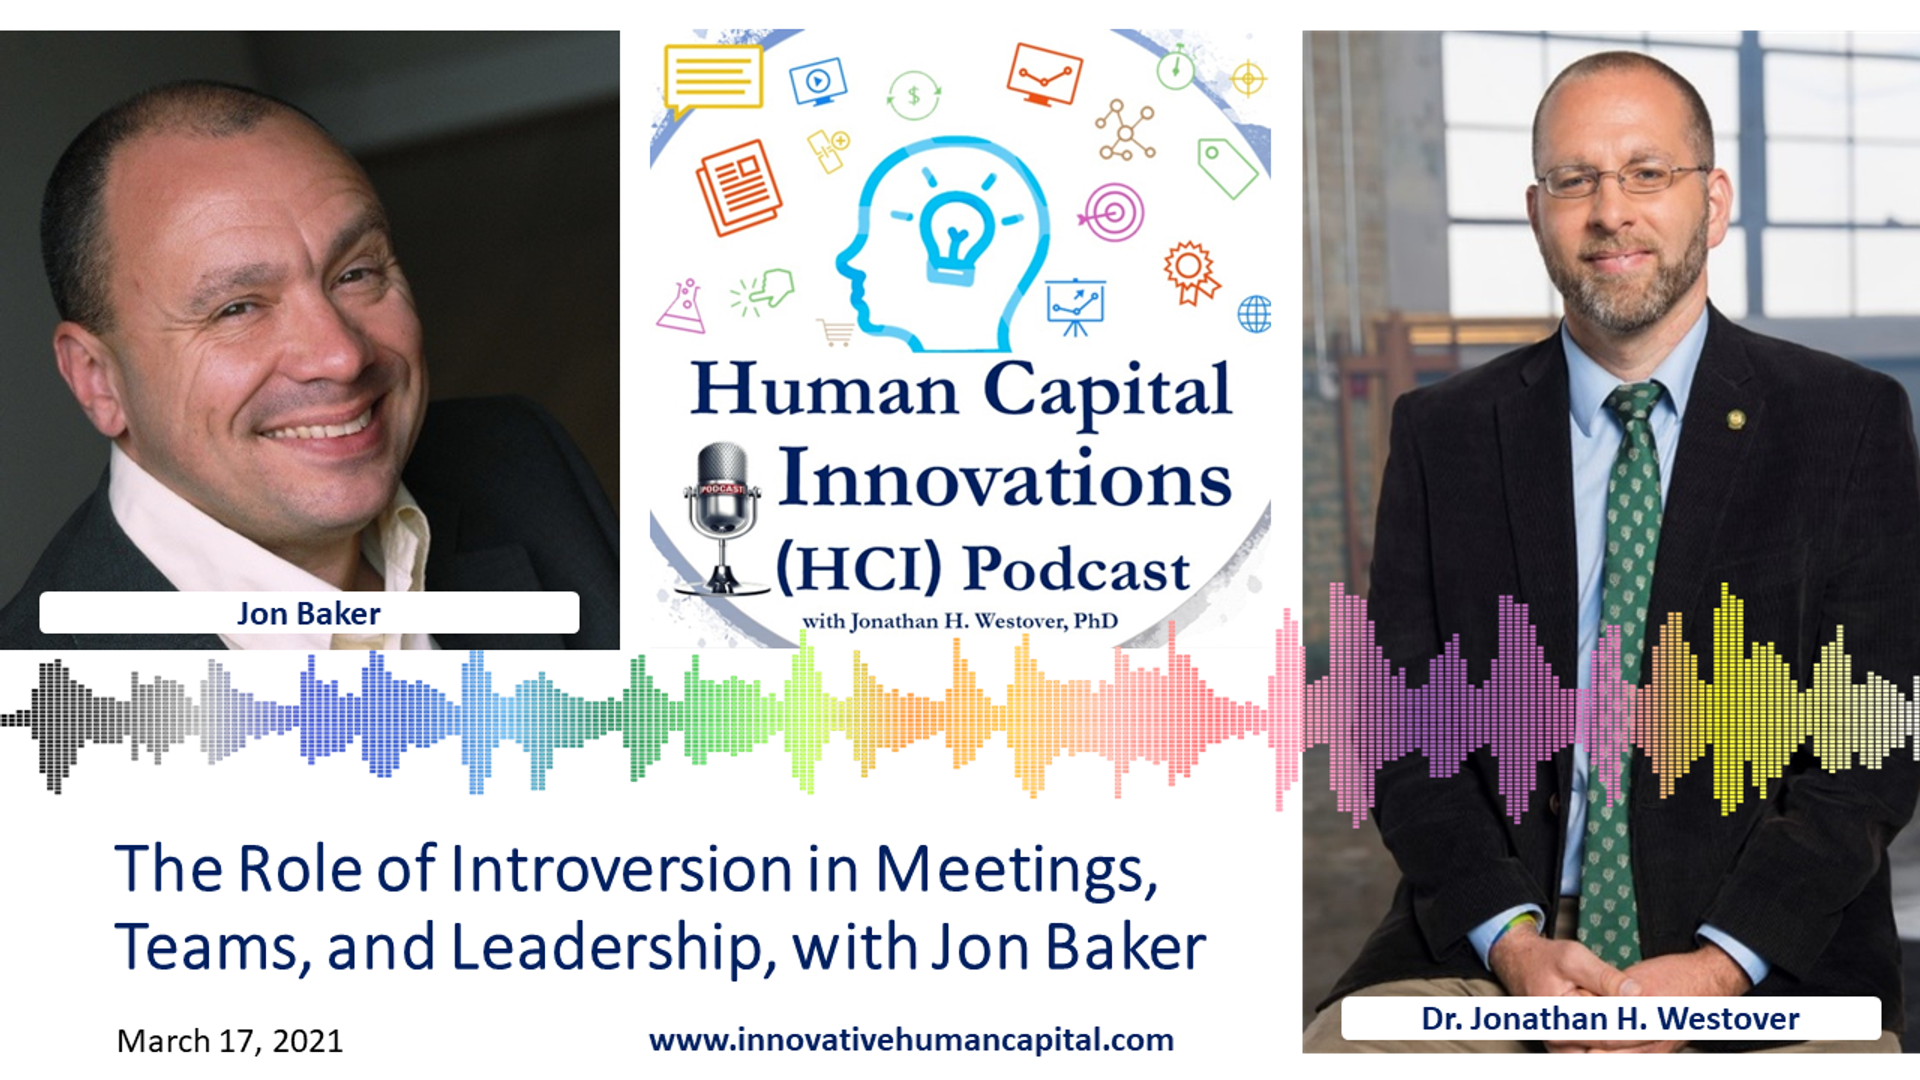 The Role of Introversion in Meetings, Teams, and Leadership